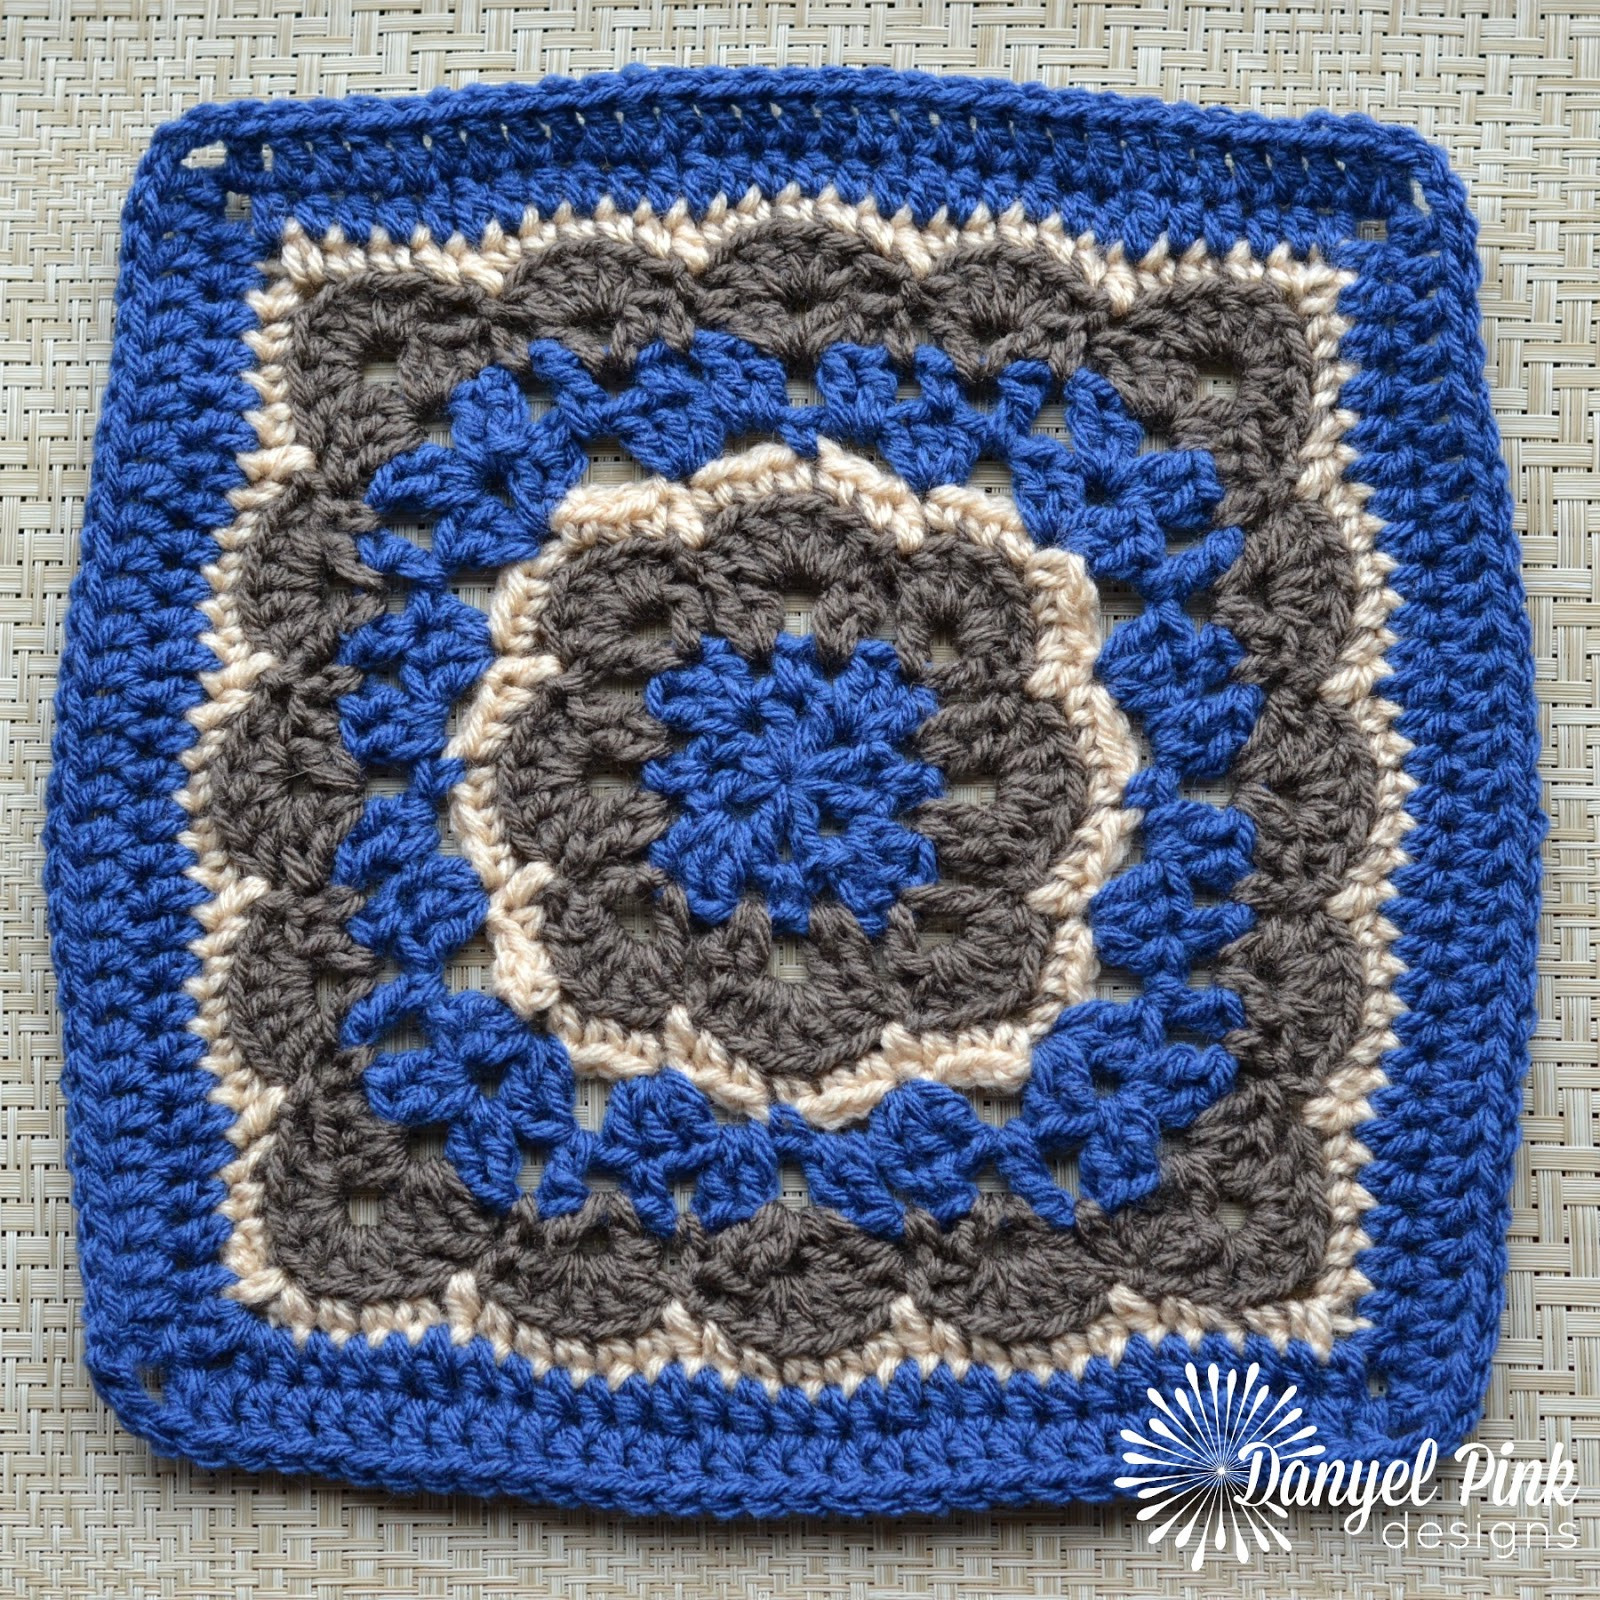 New Danyel Pink Designs Crochet Pattern Winter Bloom Afghan Afghan Squares Of Perfect 50 Ideas Afghan Squares